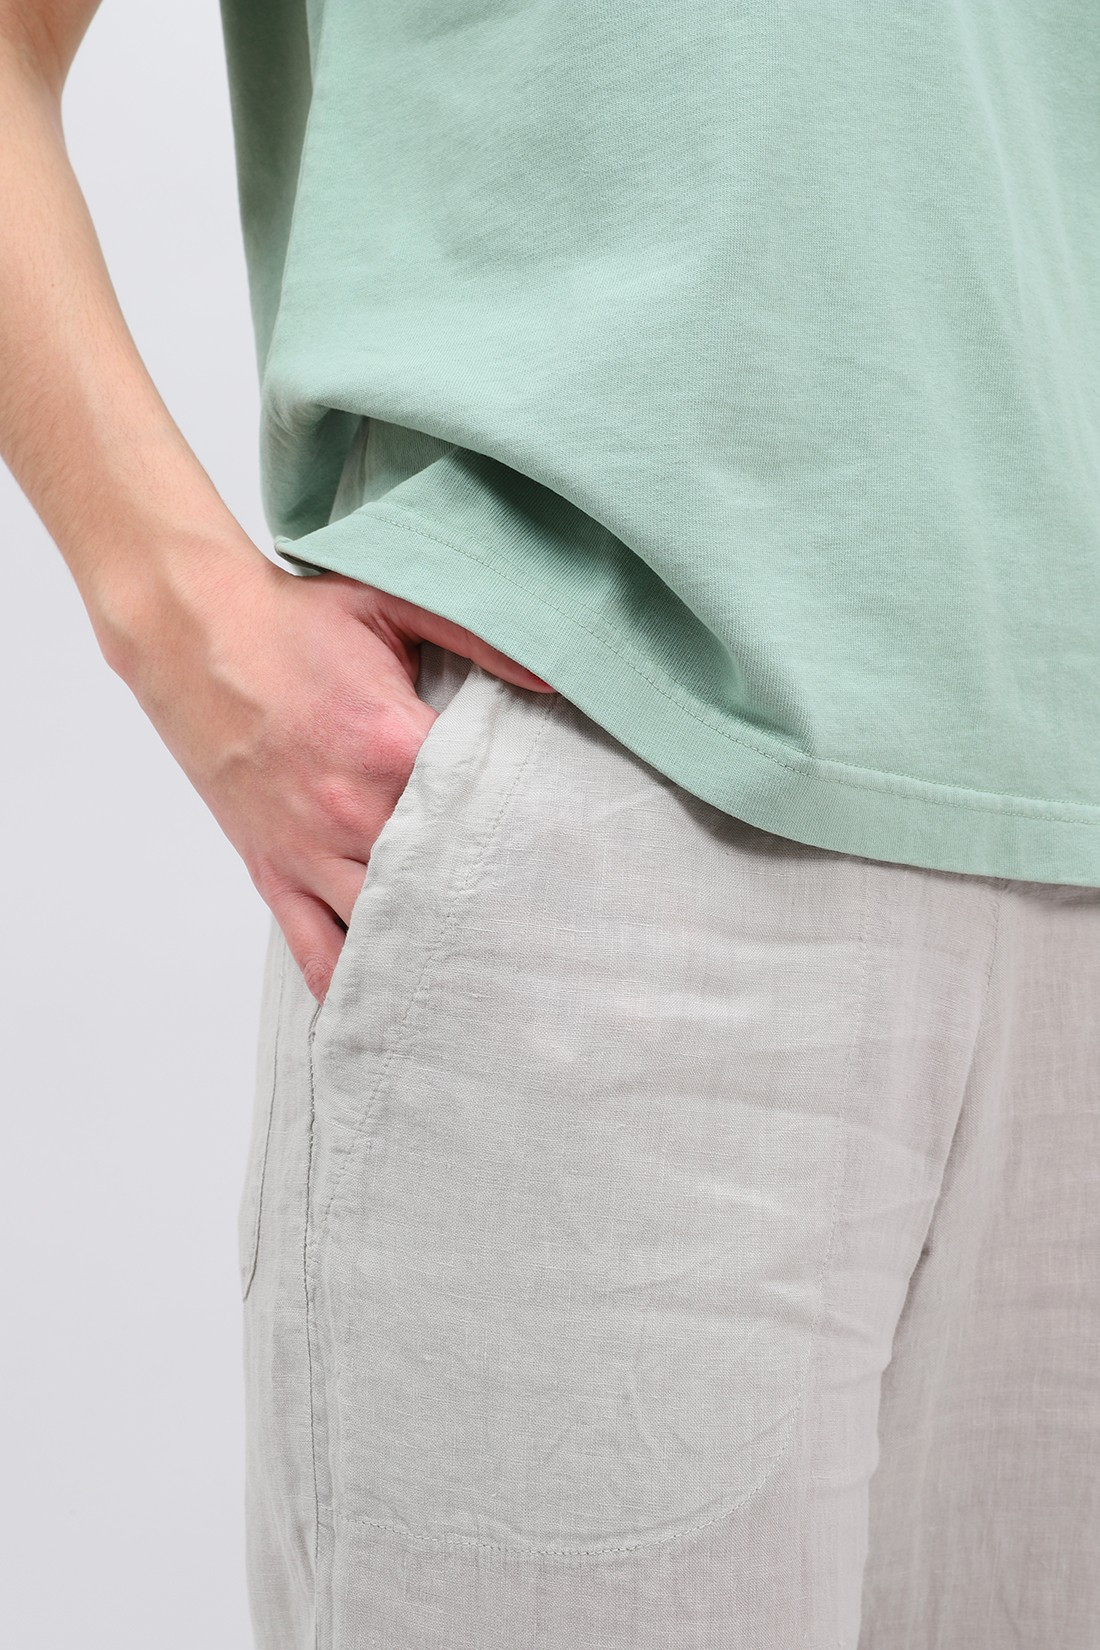 BARENA FOR WOMAN / Trousers joie Ghiaccio